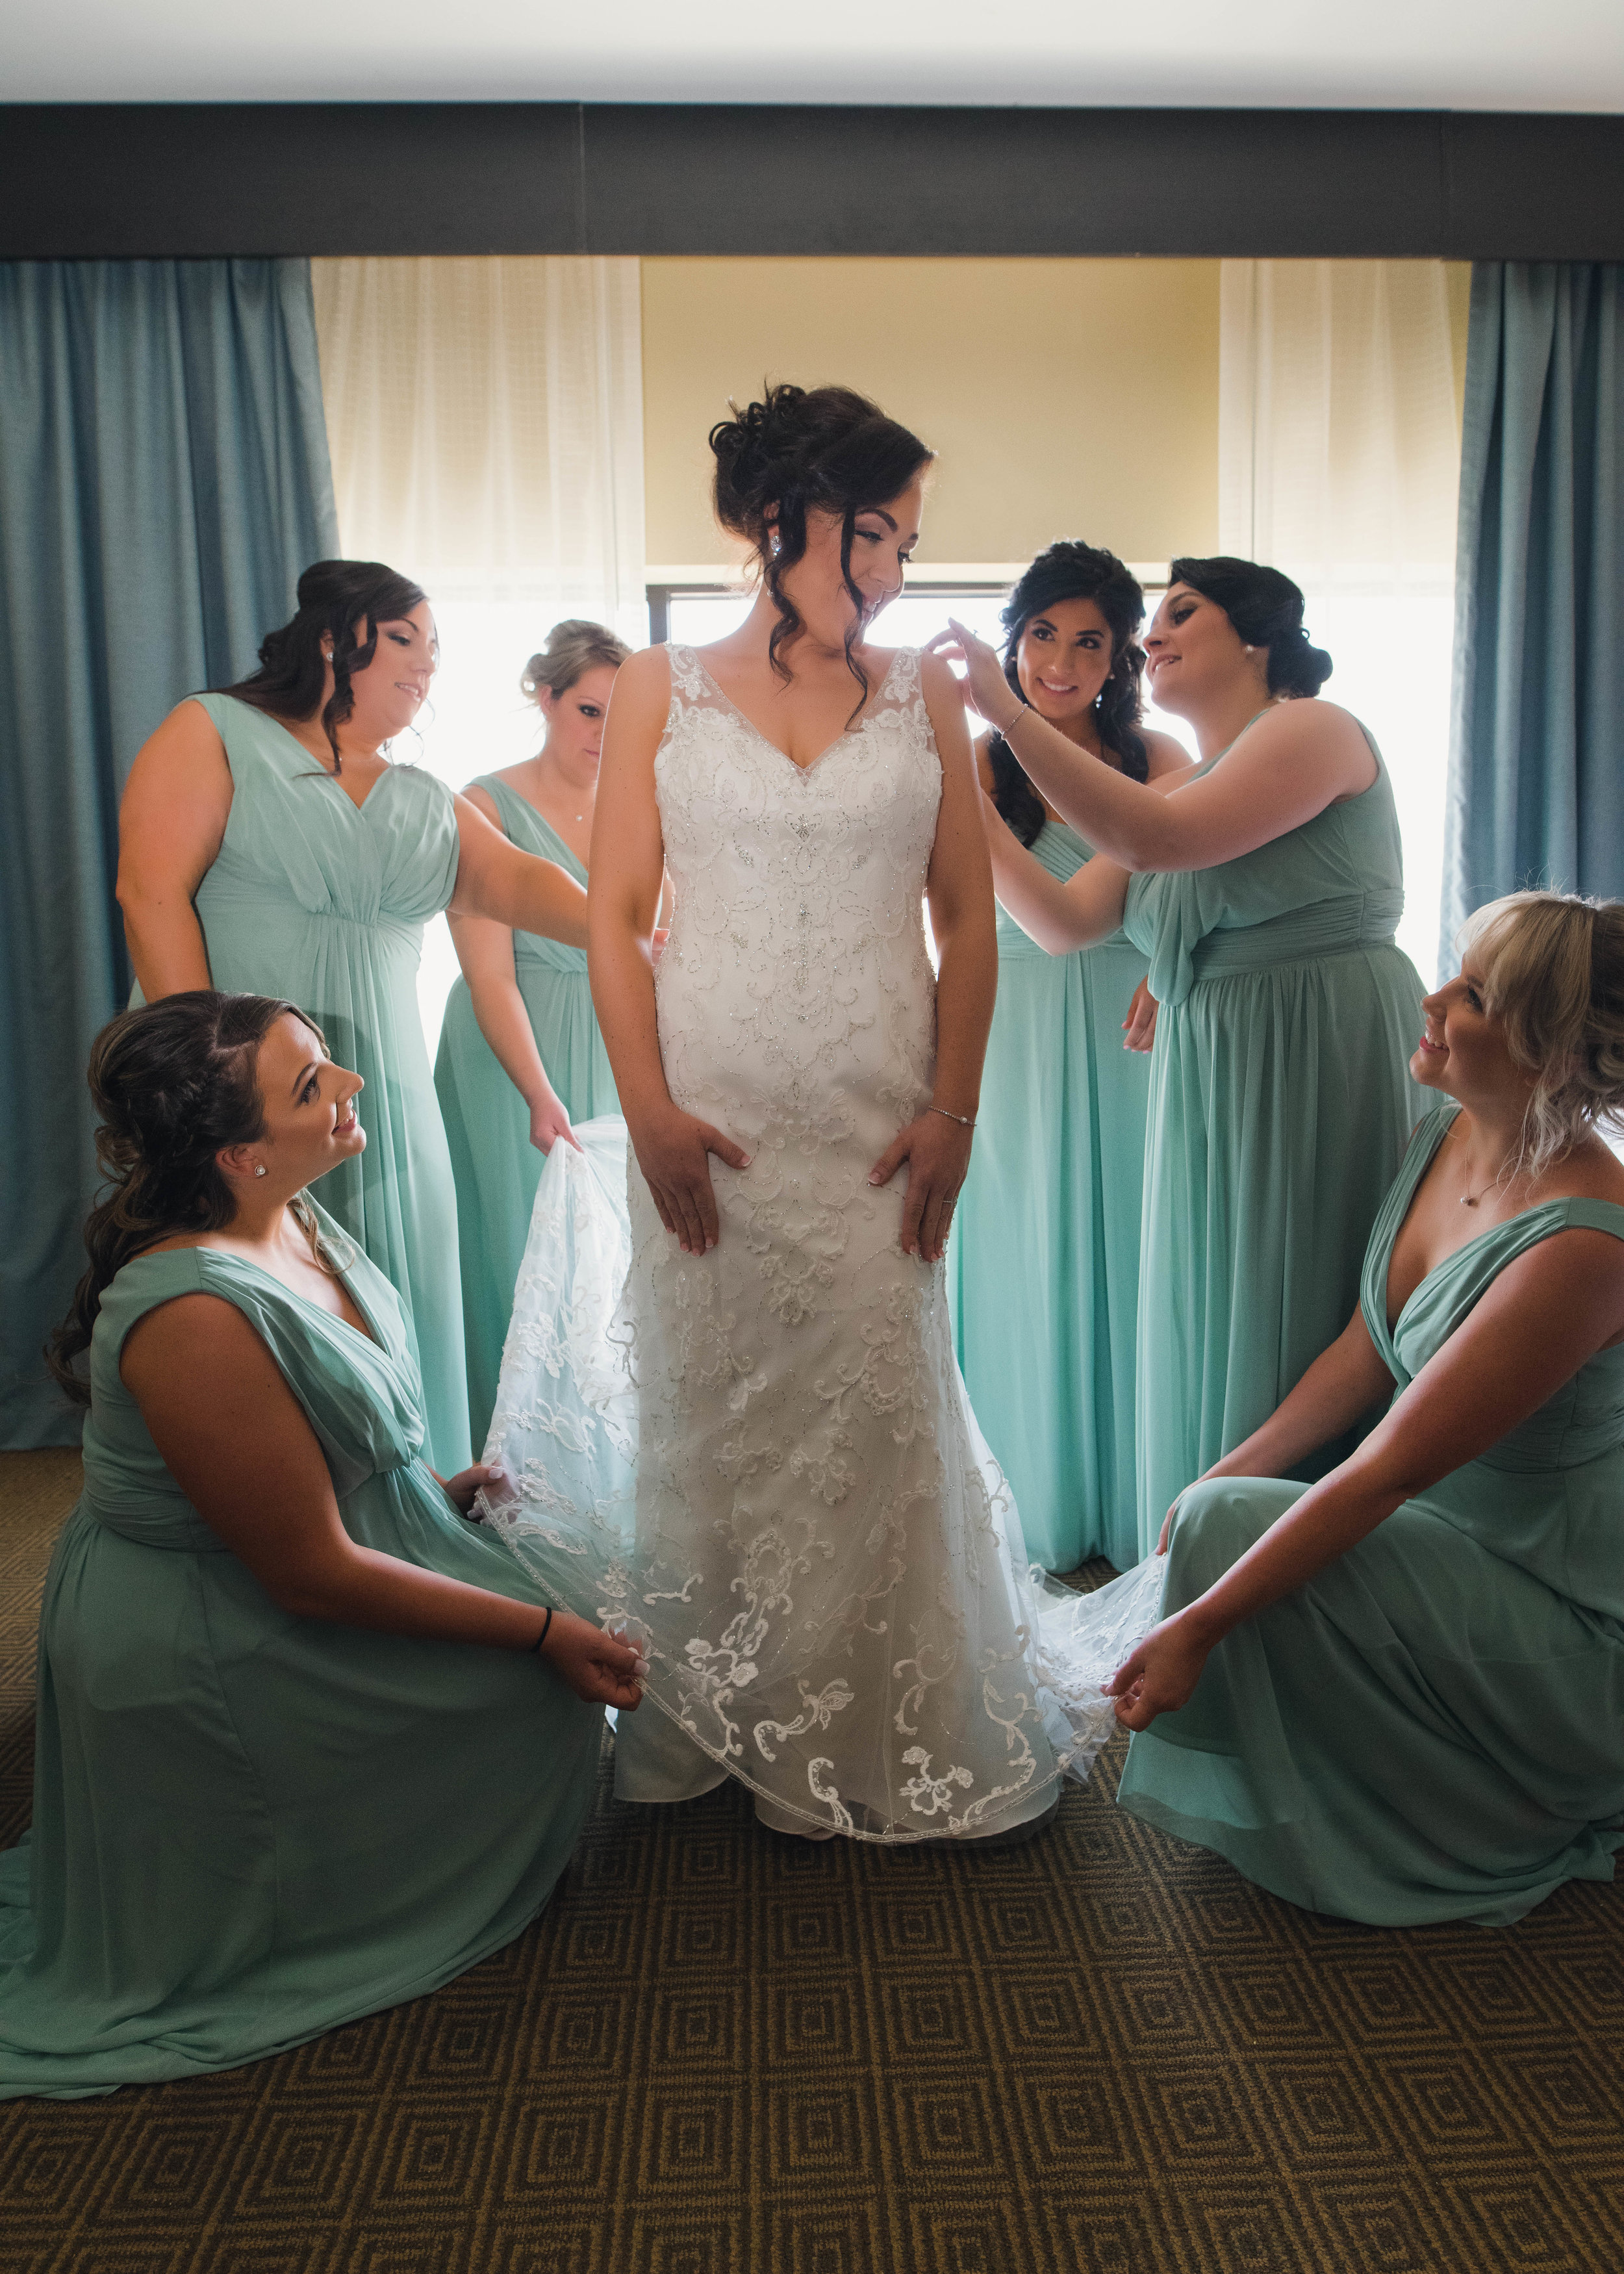 Kayla & Christina Wedding 52.jpg